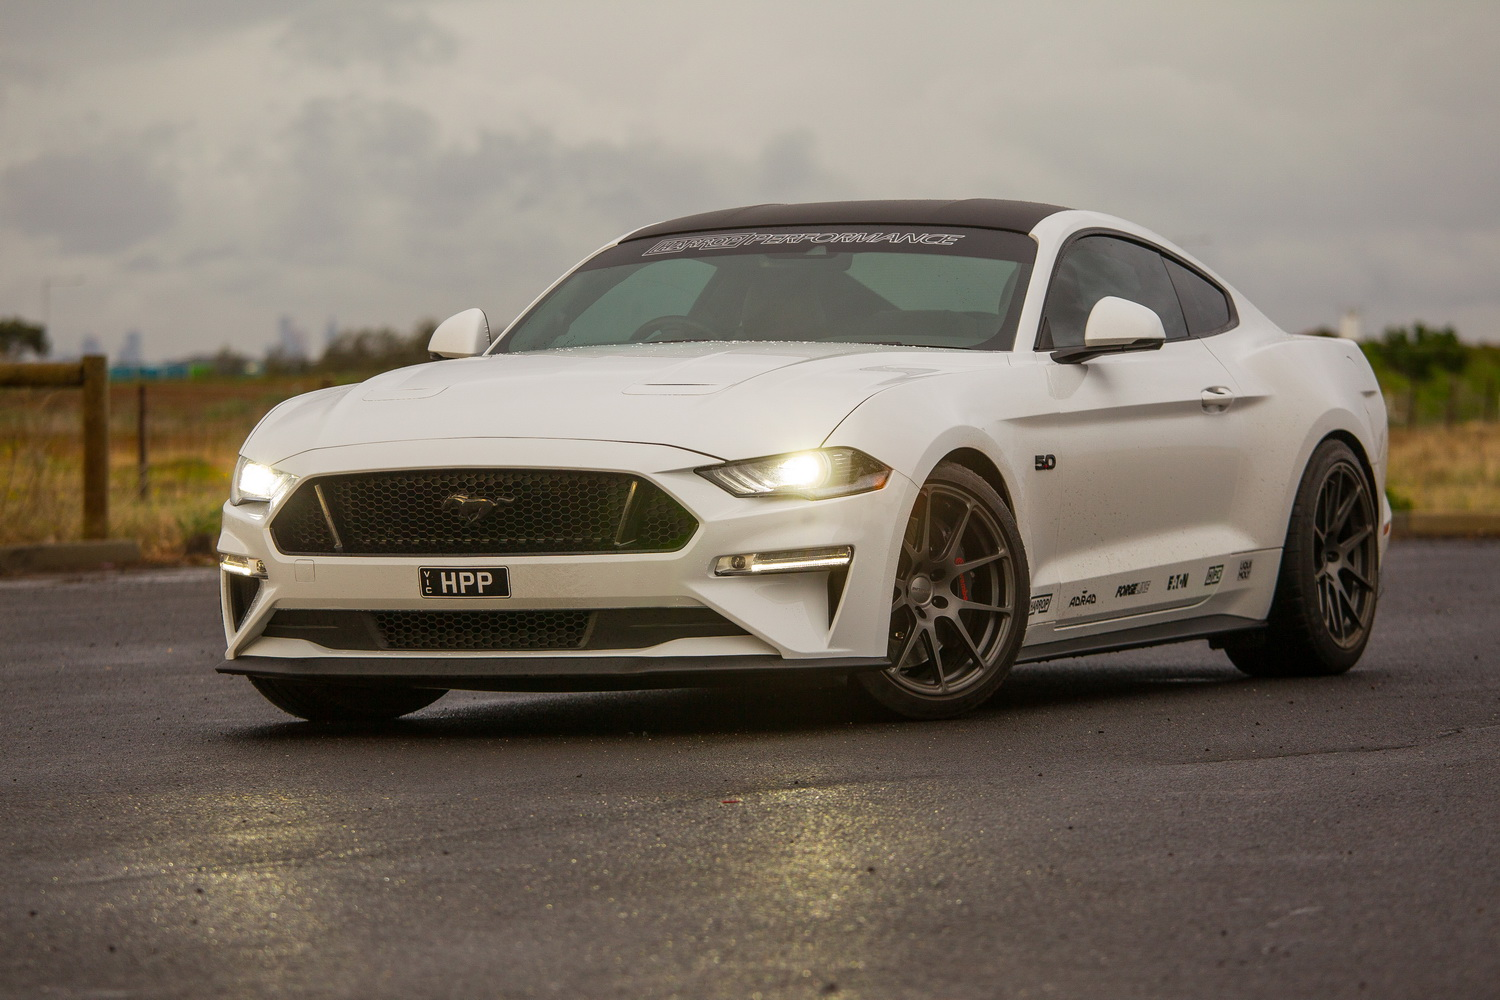 Need more beast? Try Harrop's Supercharged Ford Mustang V8